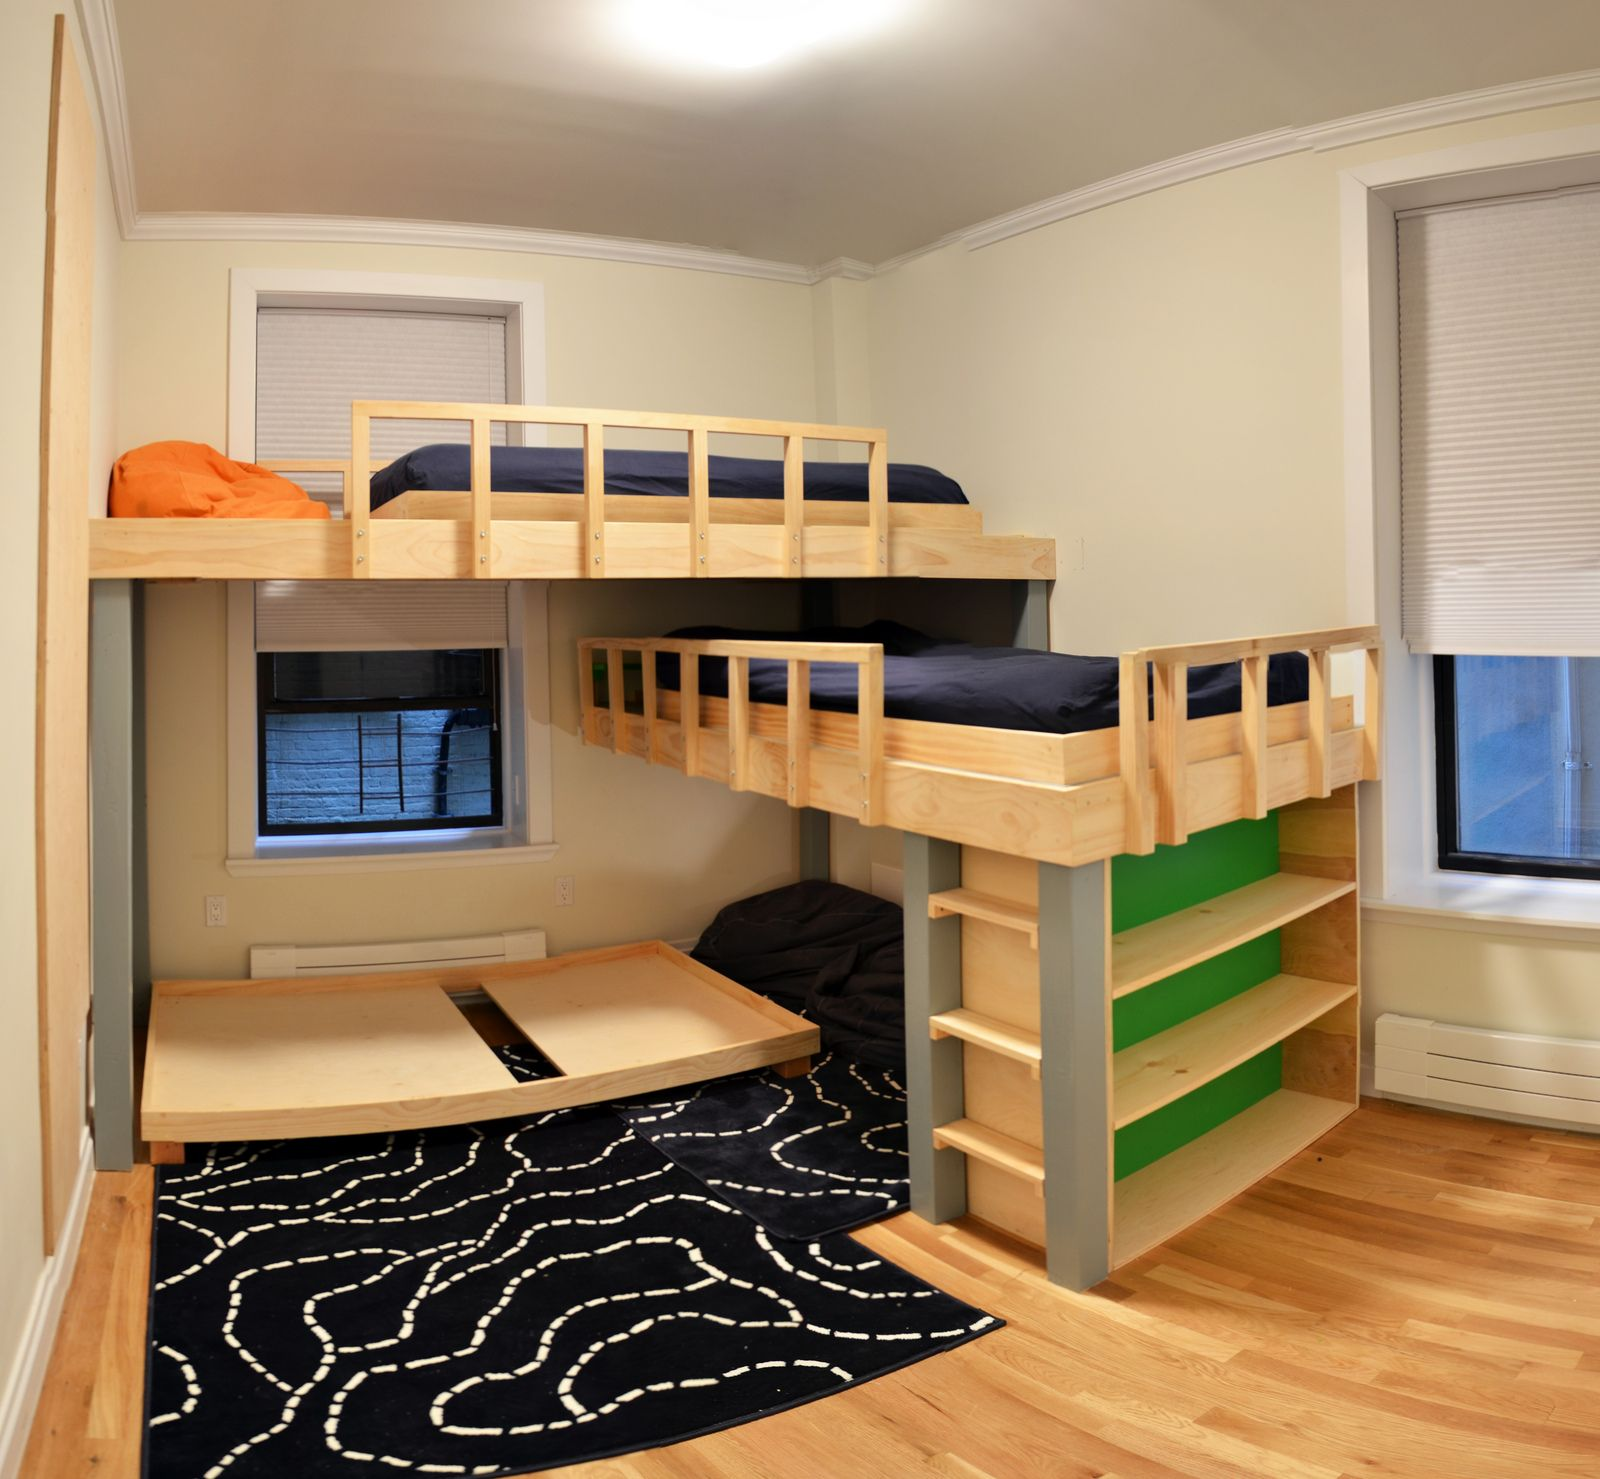 Three Level Bunk Bed We Had Built For Our B Jwild Flickr